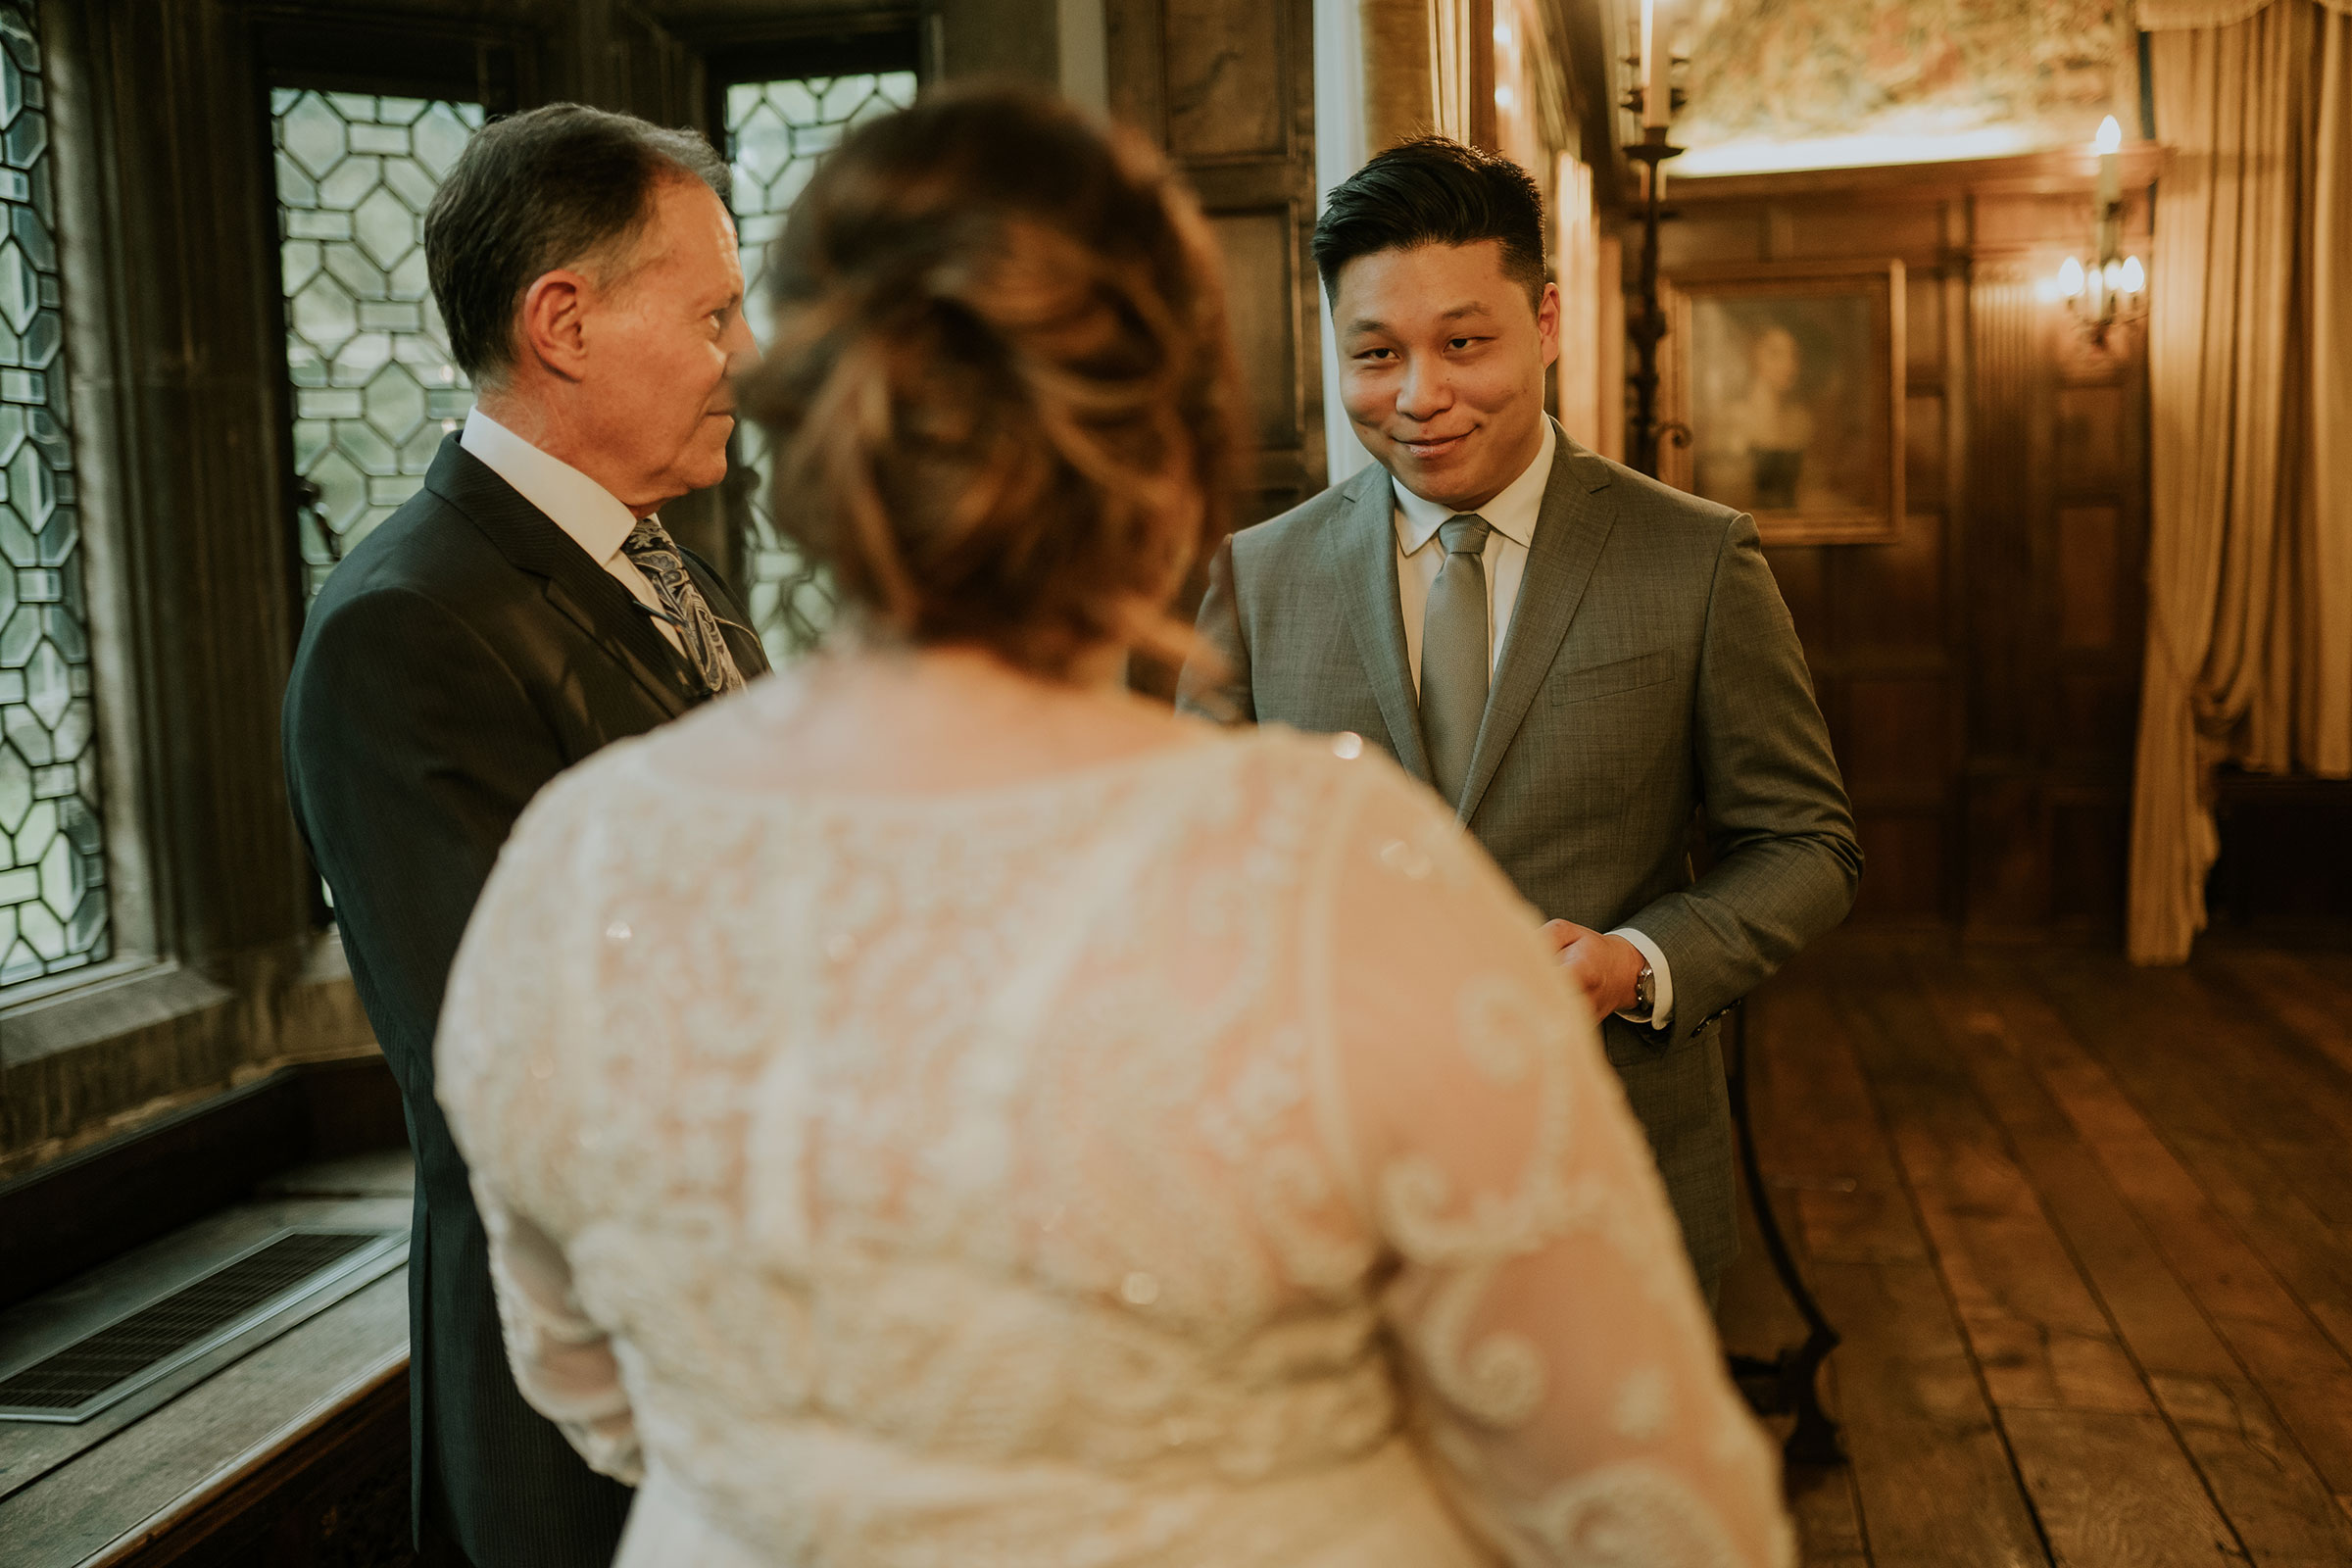 groom-looking-at-bride-during-vows-elopement-salisbury-house-desmoines-iowa-raelyn-ramey-photography.jpg